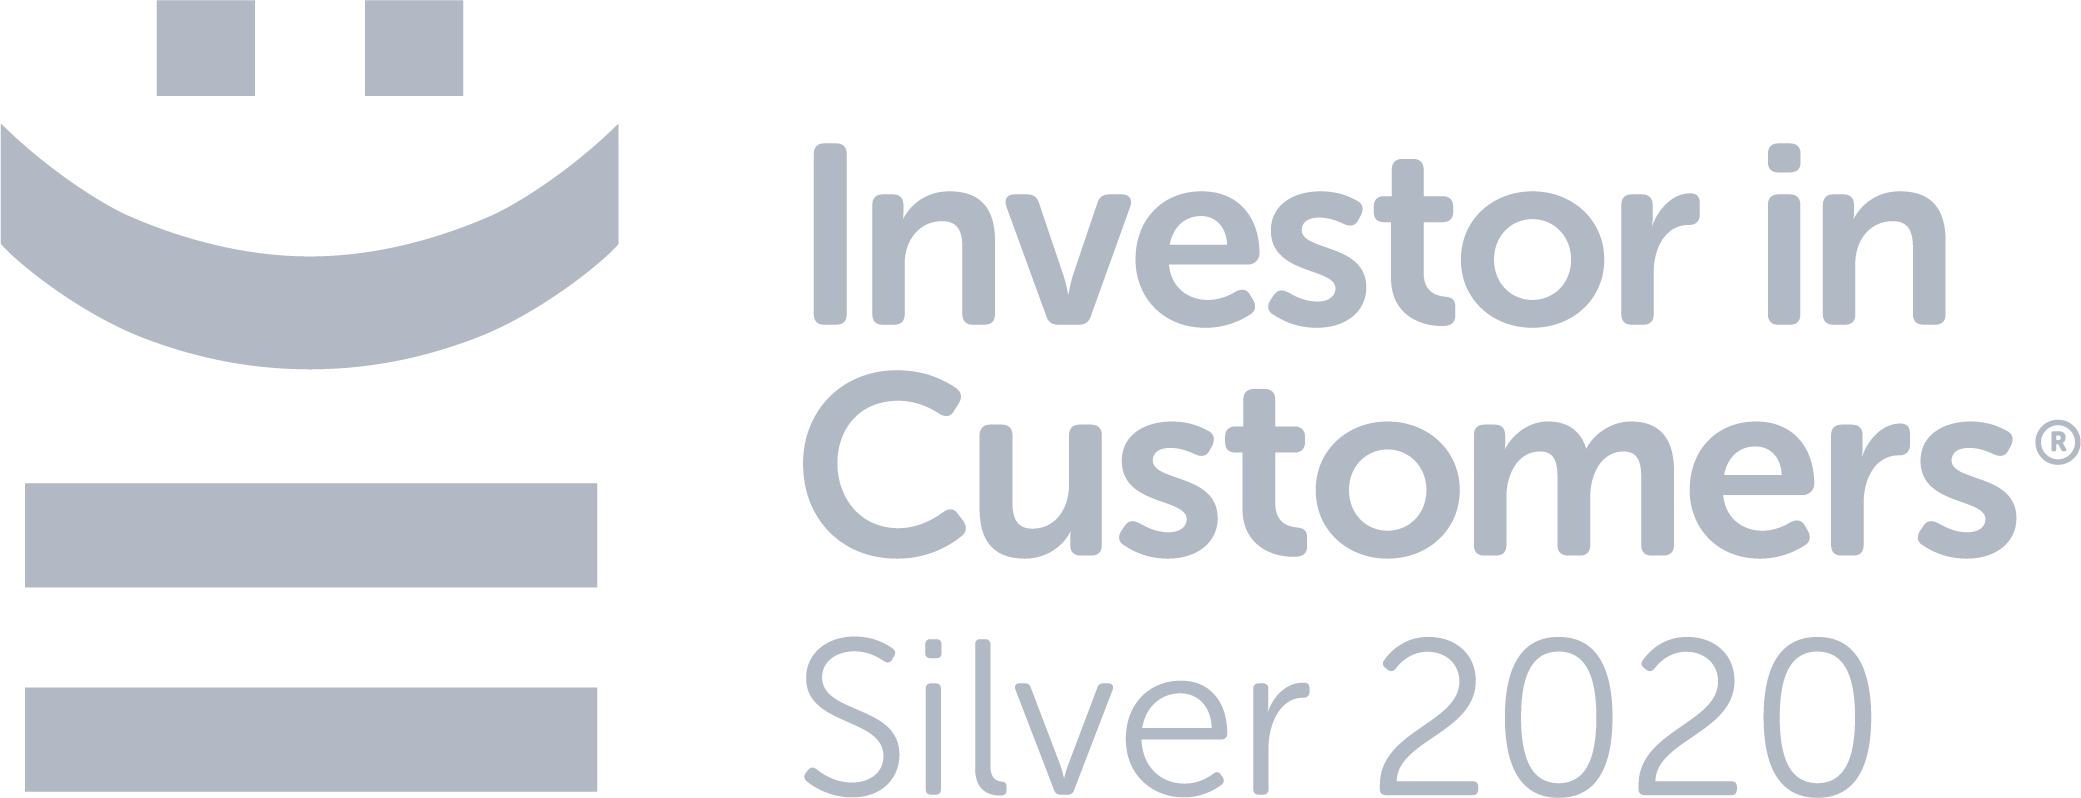 Investor in Customers - Silver 2020